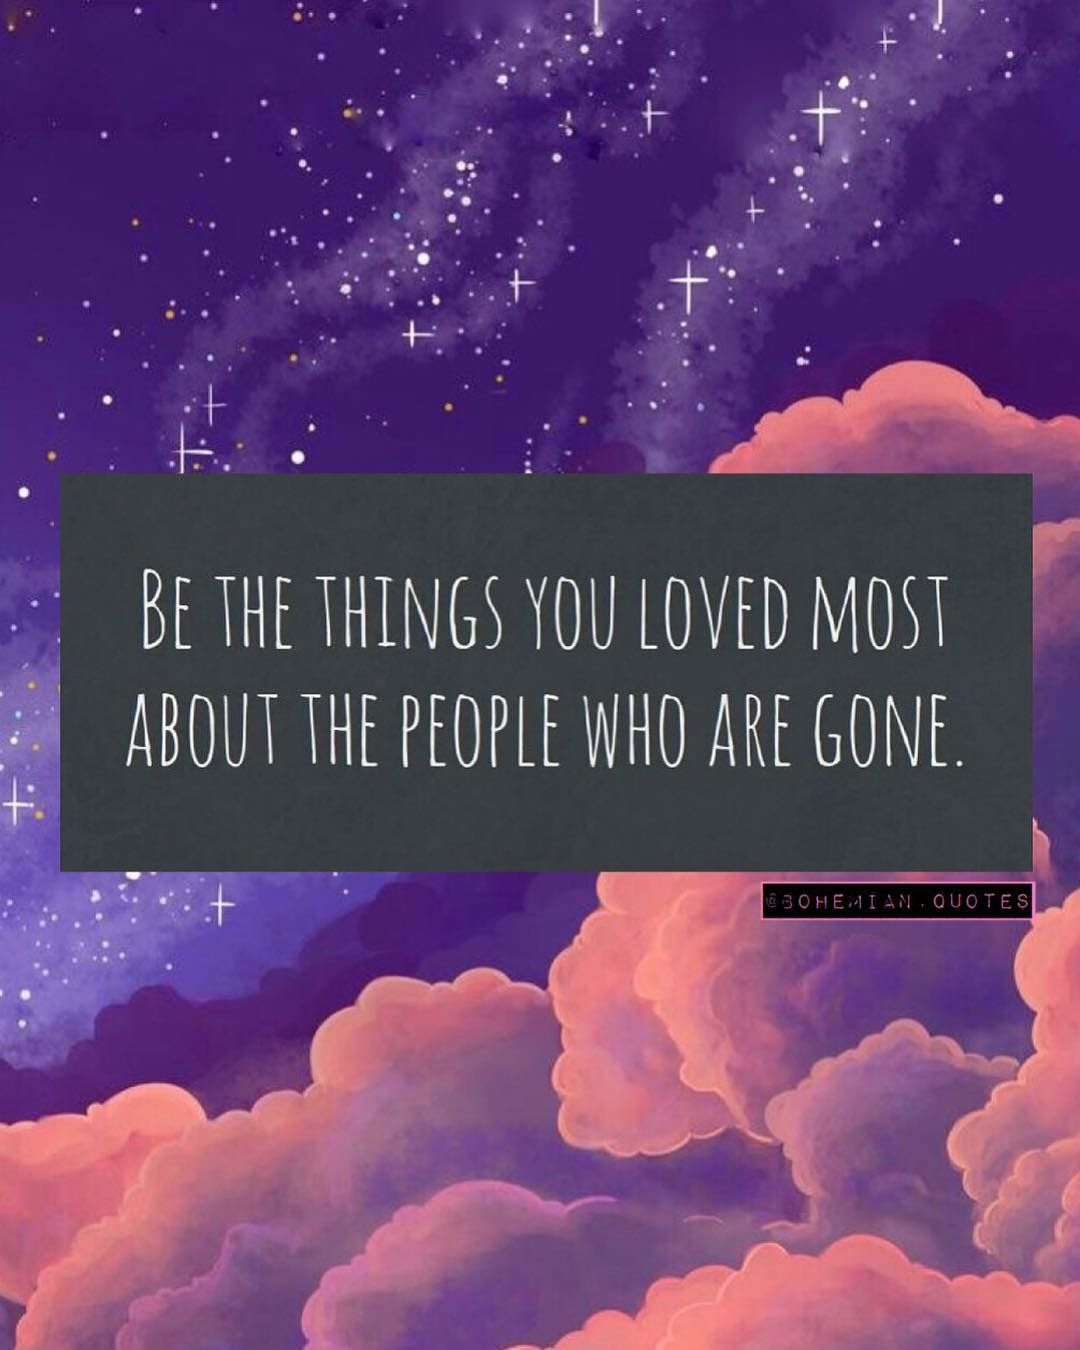 Pin By Michele Motta On Words Of Wisdom Inspiration Bohemian Quotes Quotes Soul Quotes